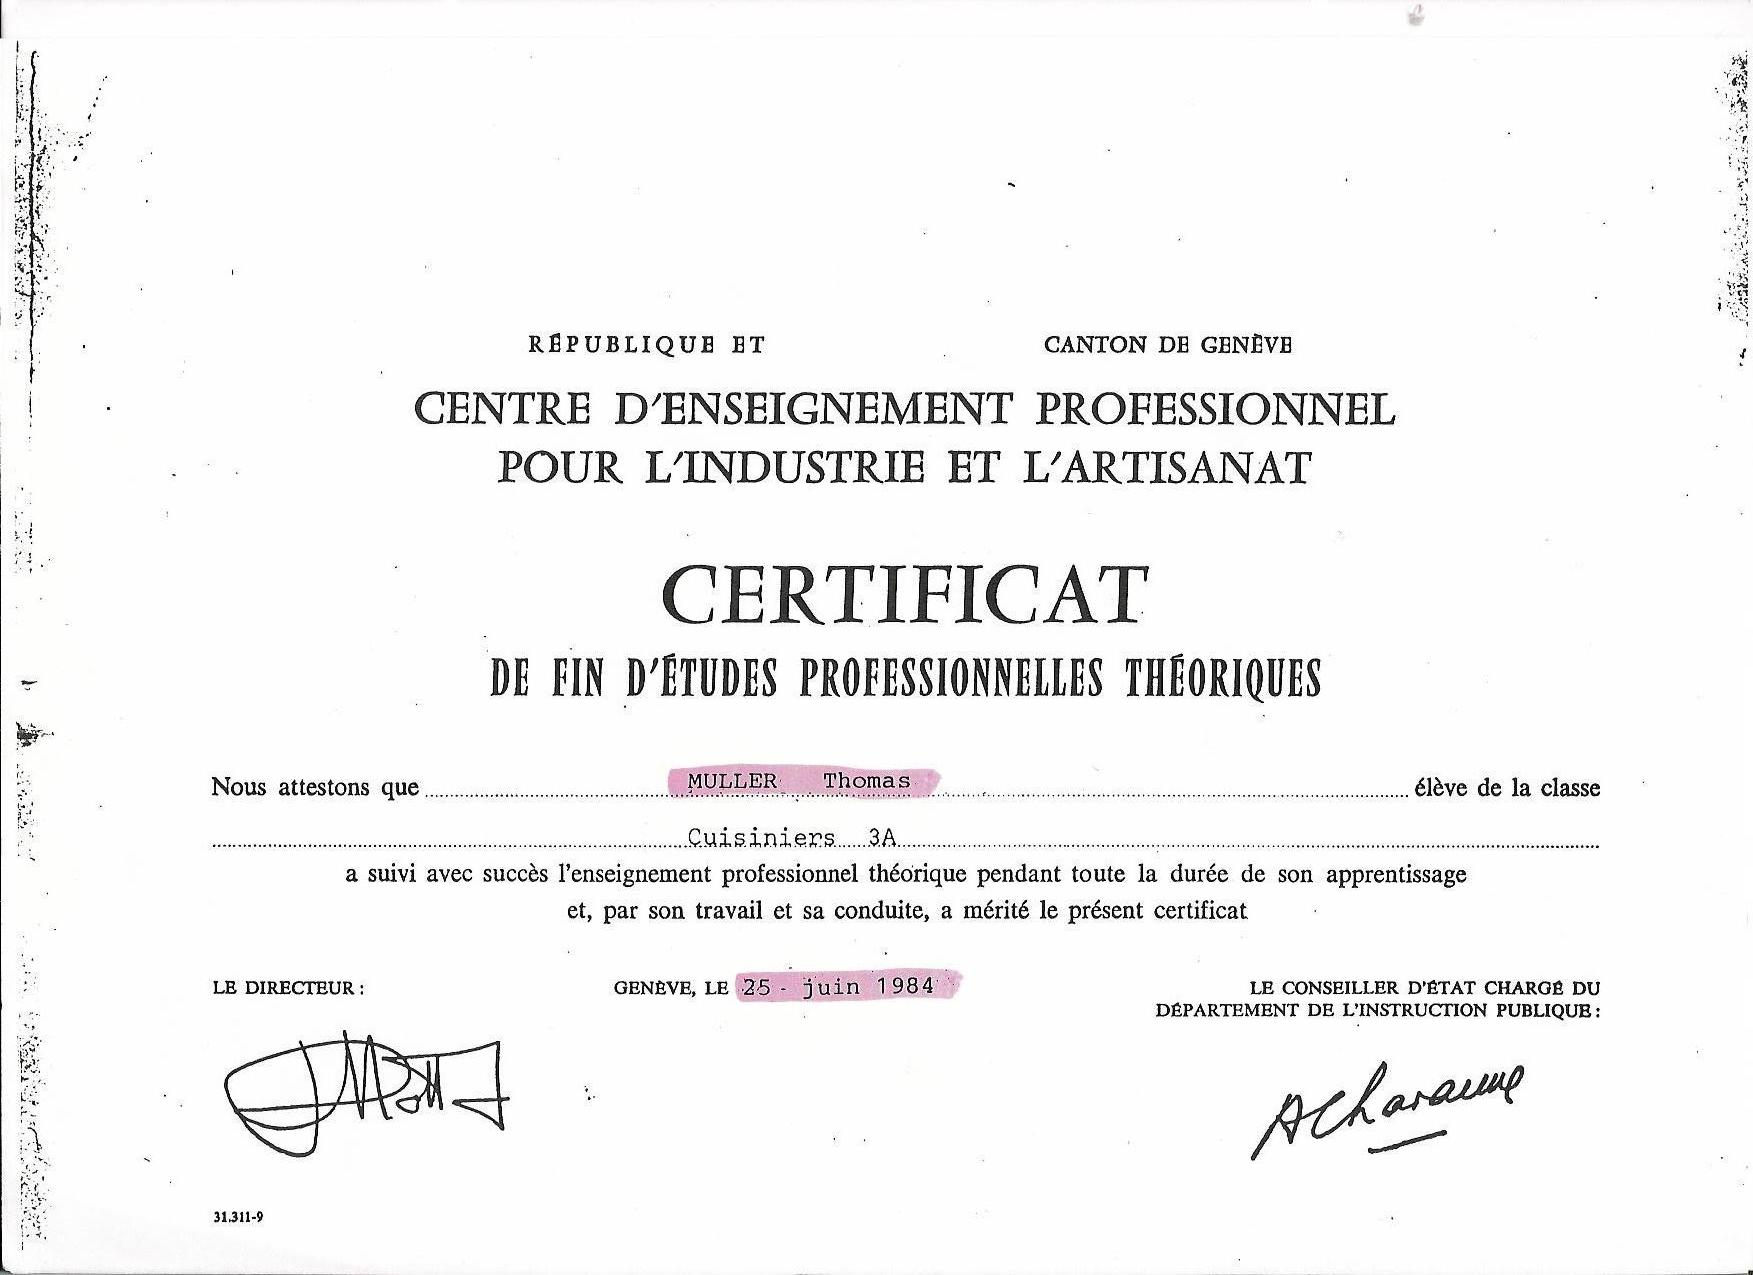 Thomas mller copy of certificats and diplomes certificate hotel management school yelopaper Images